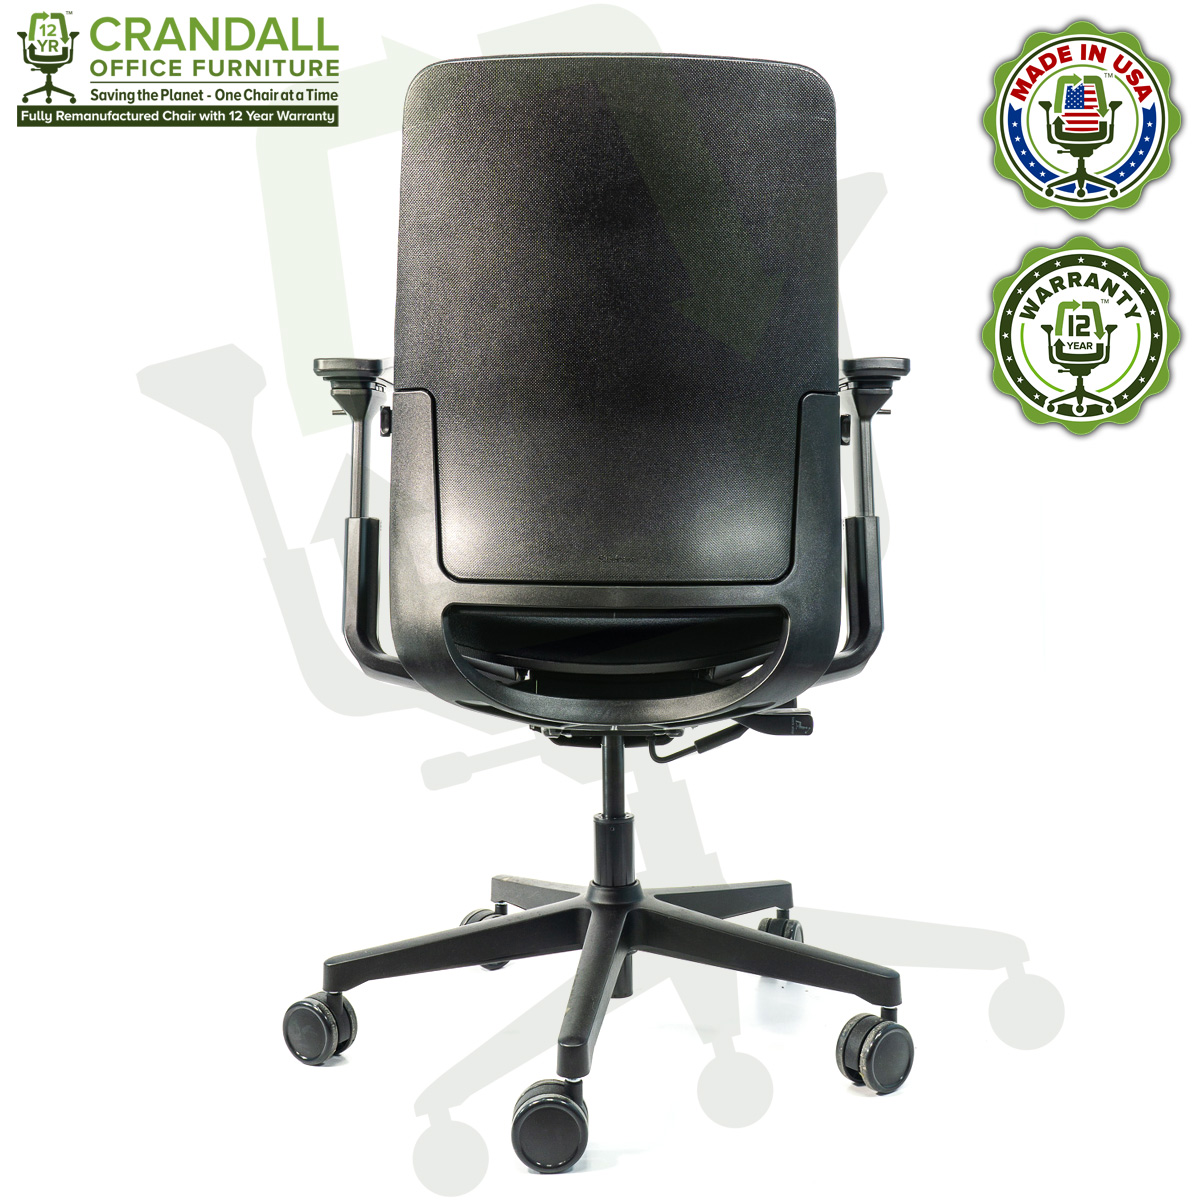 Crandall Office Furniture Remanufactured Steelcase Amia Chair with 12 Year Warranty - 05